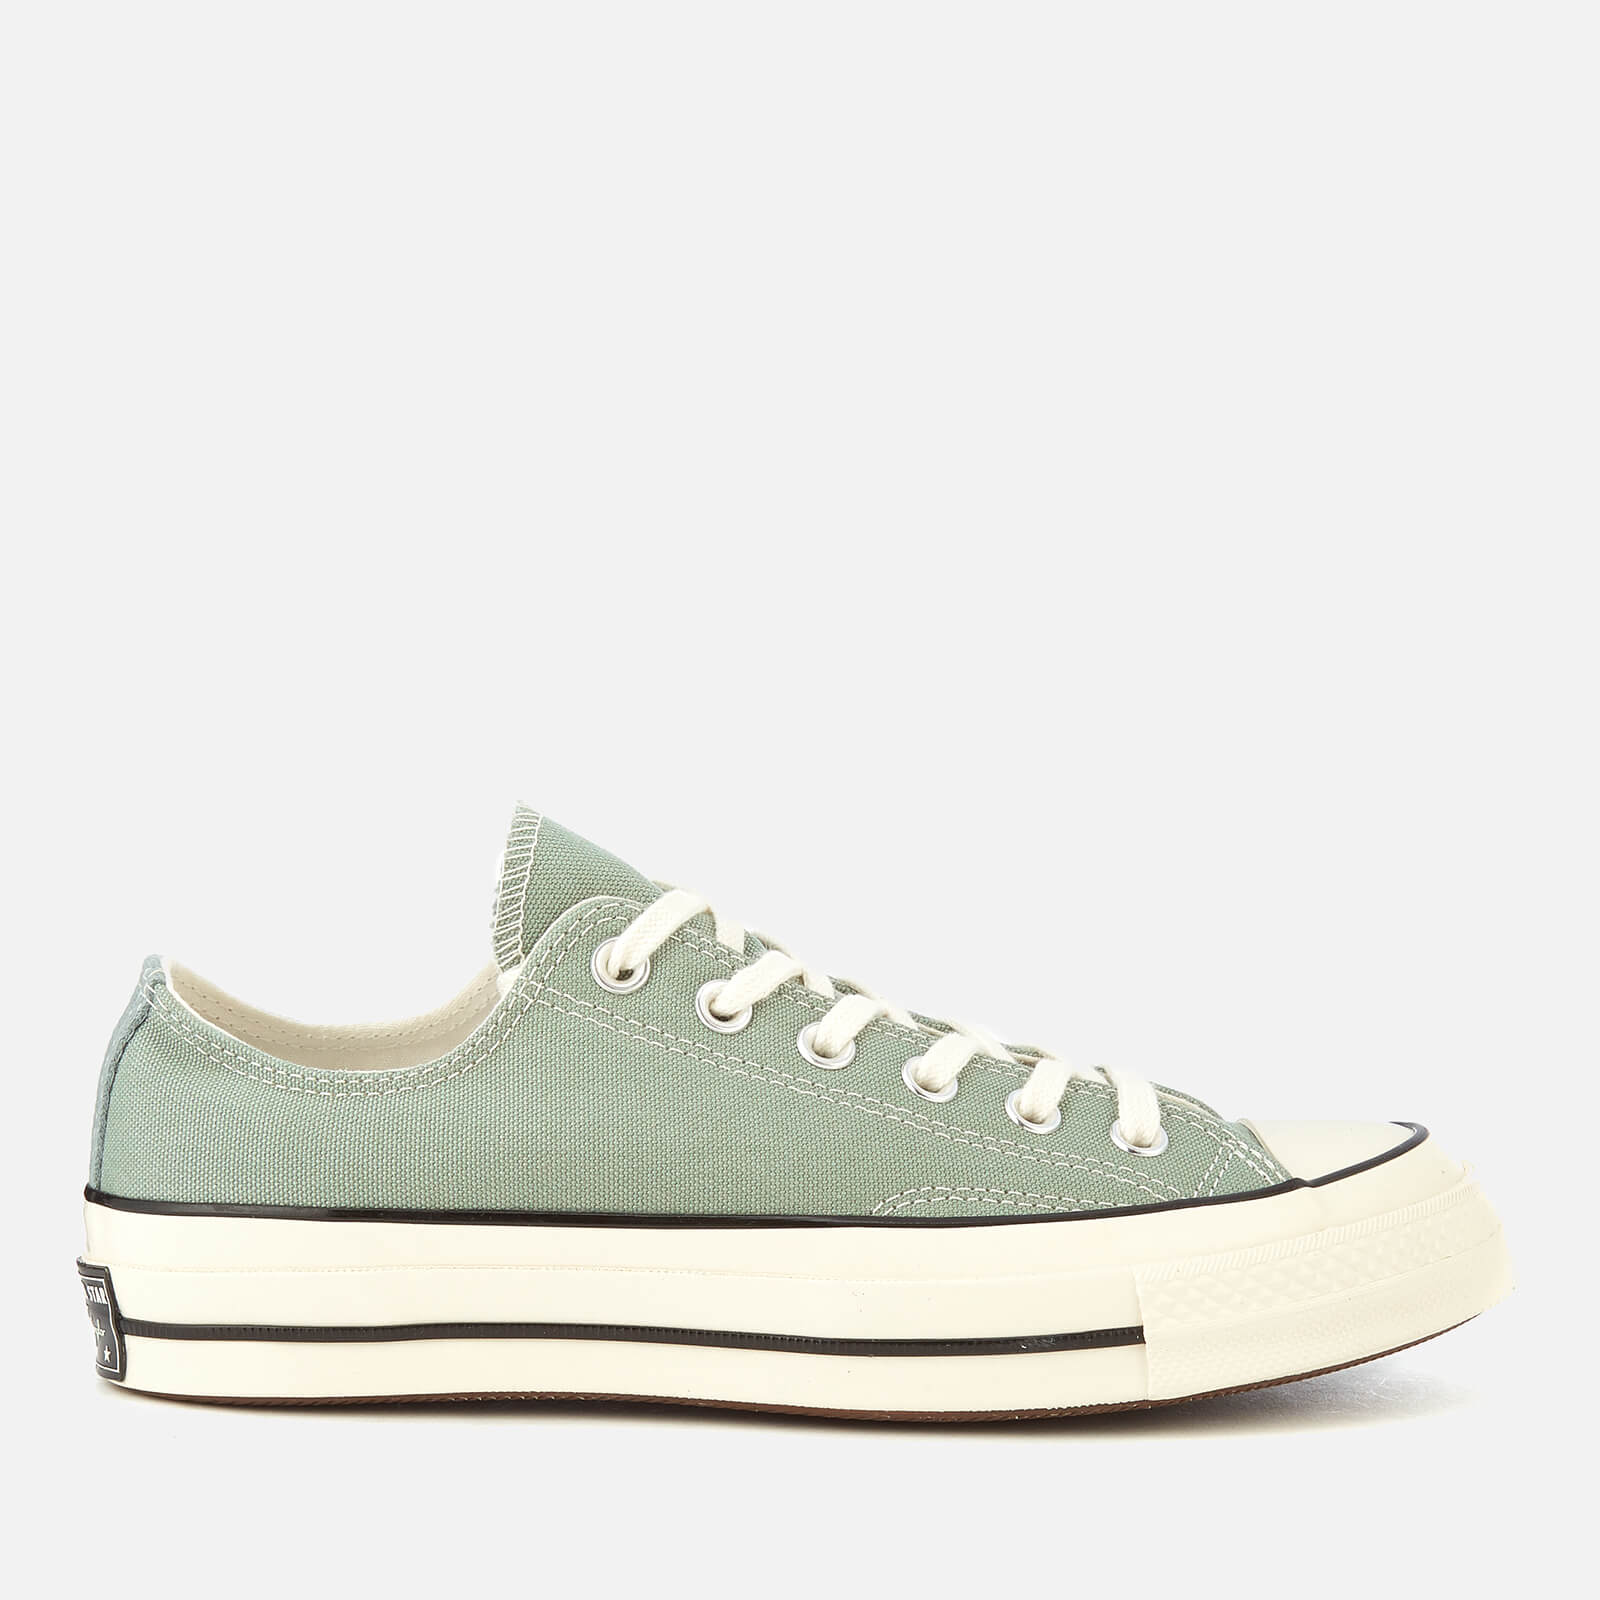 ec689c647ba Converse Chuck Taylor All Star  70 Ox Trainers - Mica Green Black Egret -  Free UK Delivery over £50